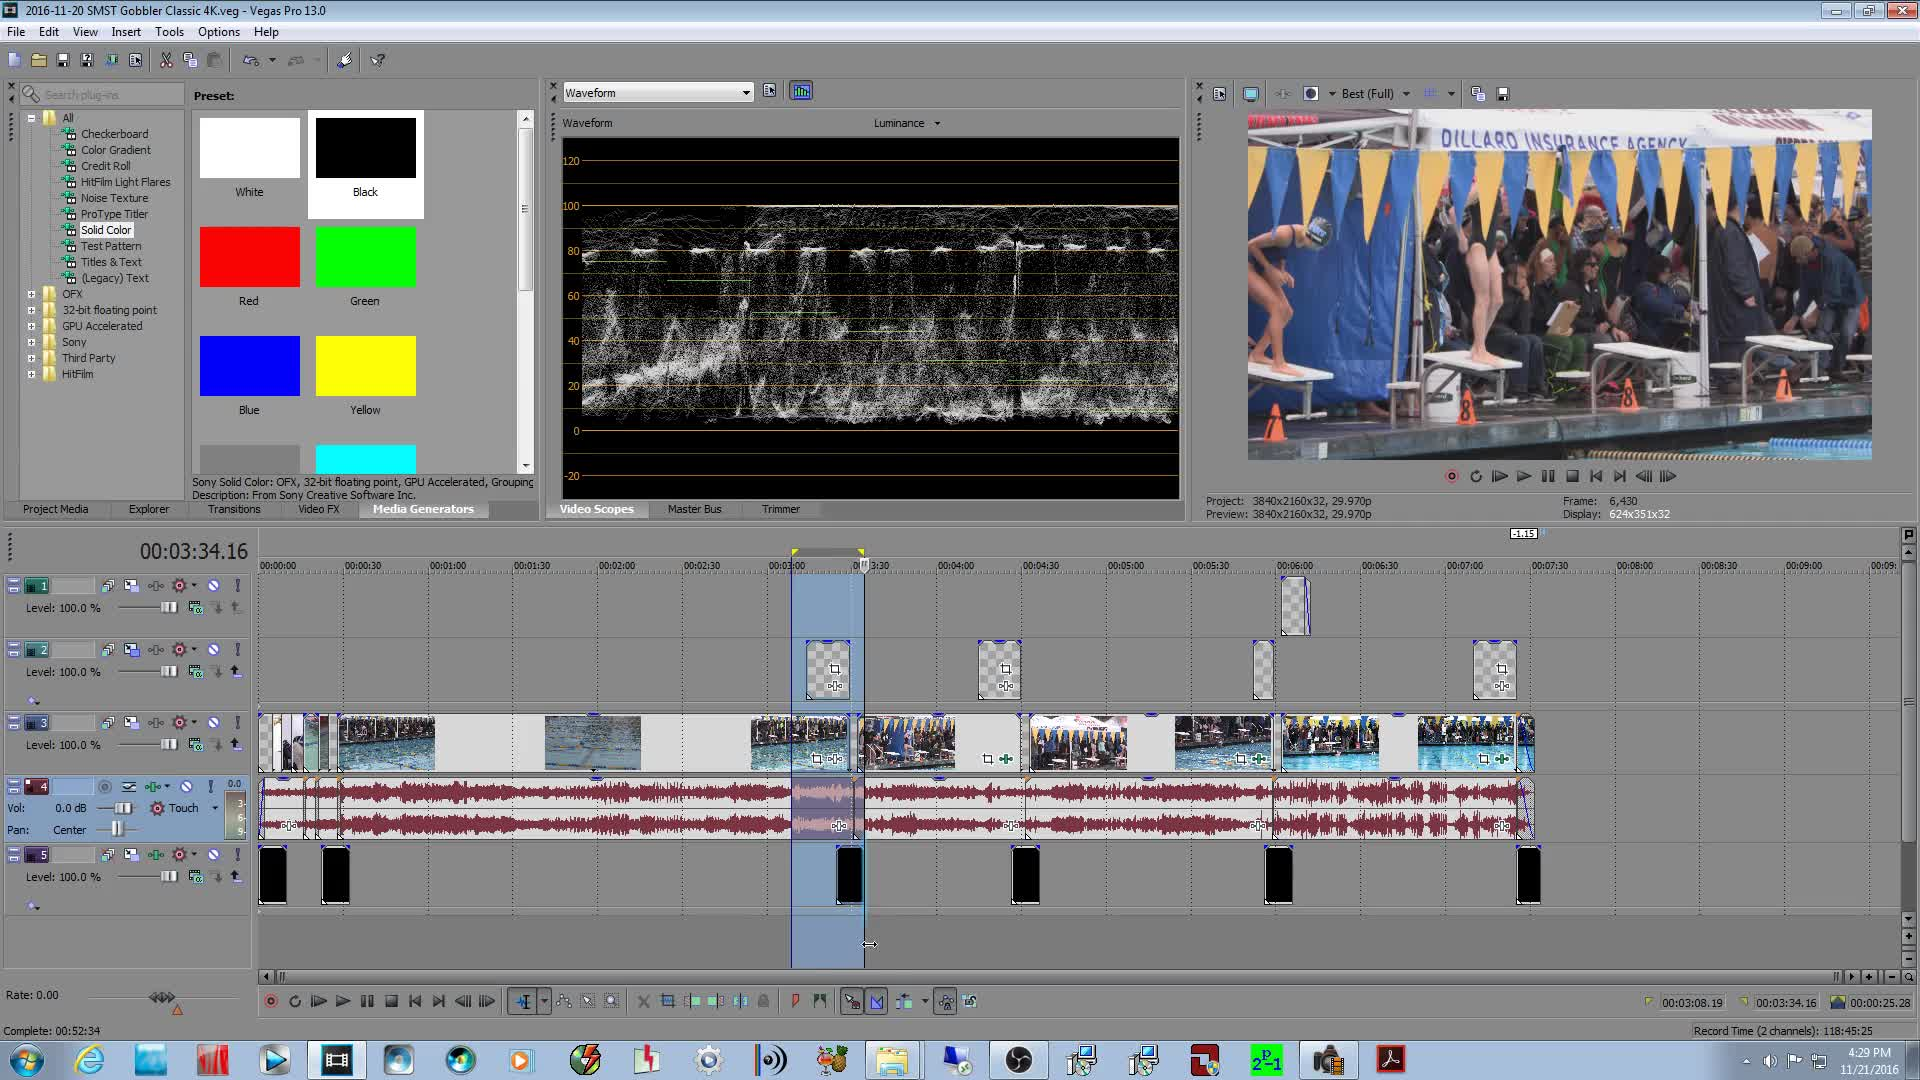 How to Render my project in 4k to put on a Hard drive for TV